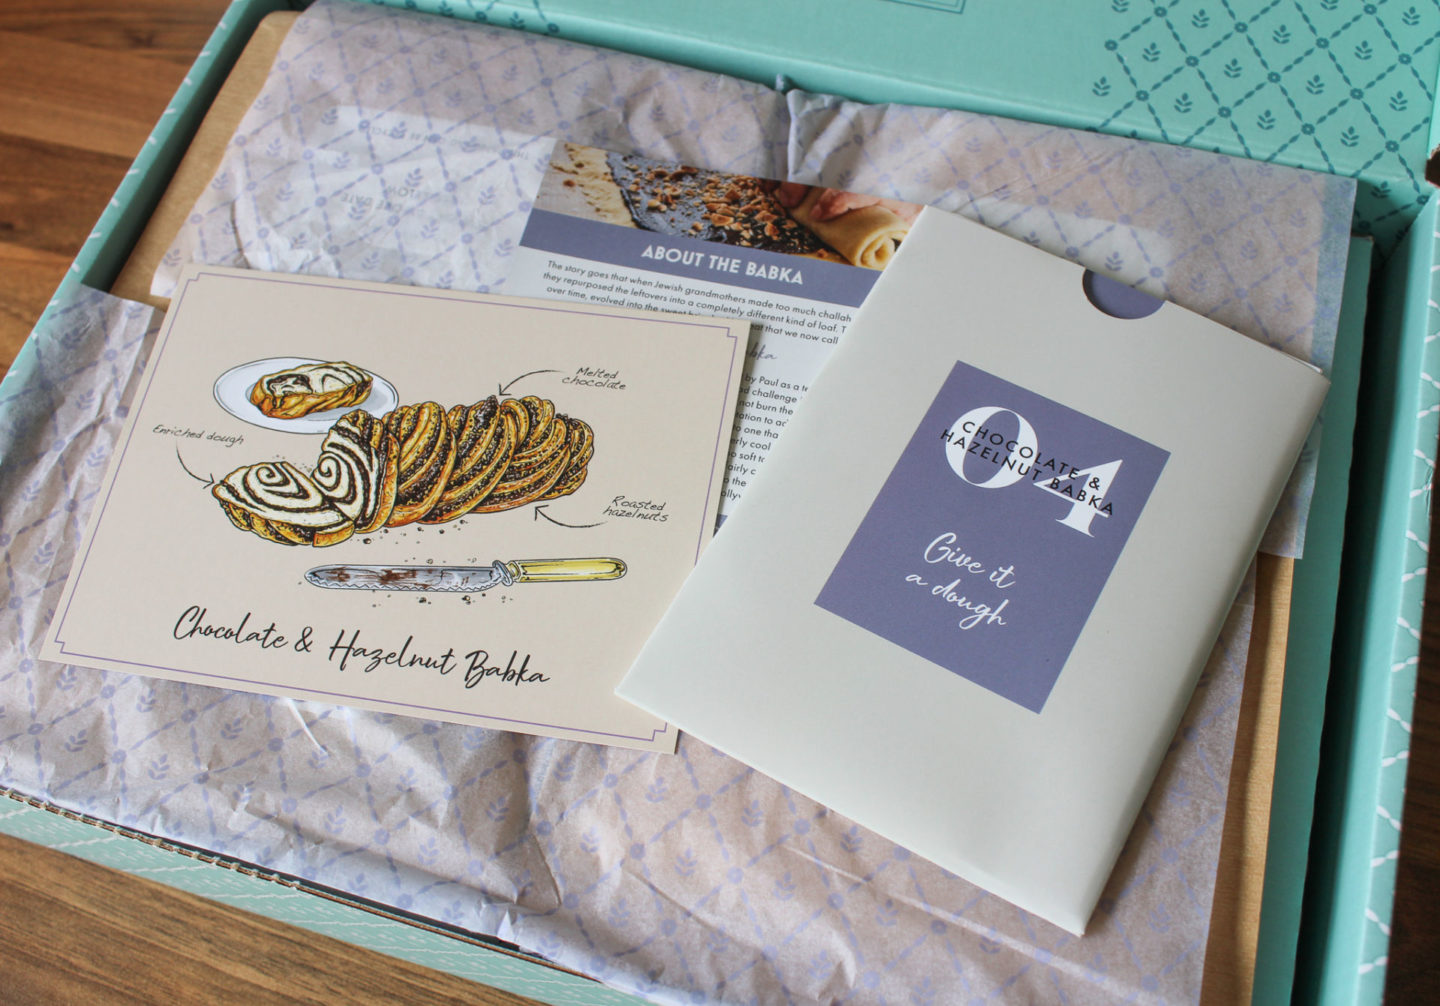 recipe card found in the bake off box to make the chocolate and hazelnut babka